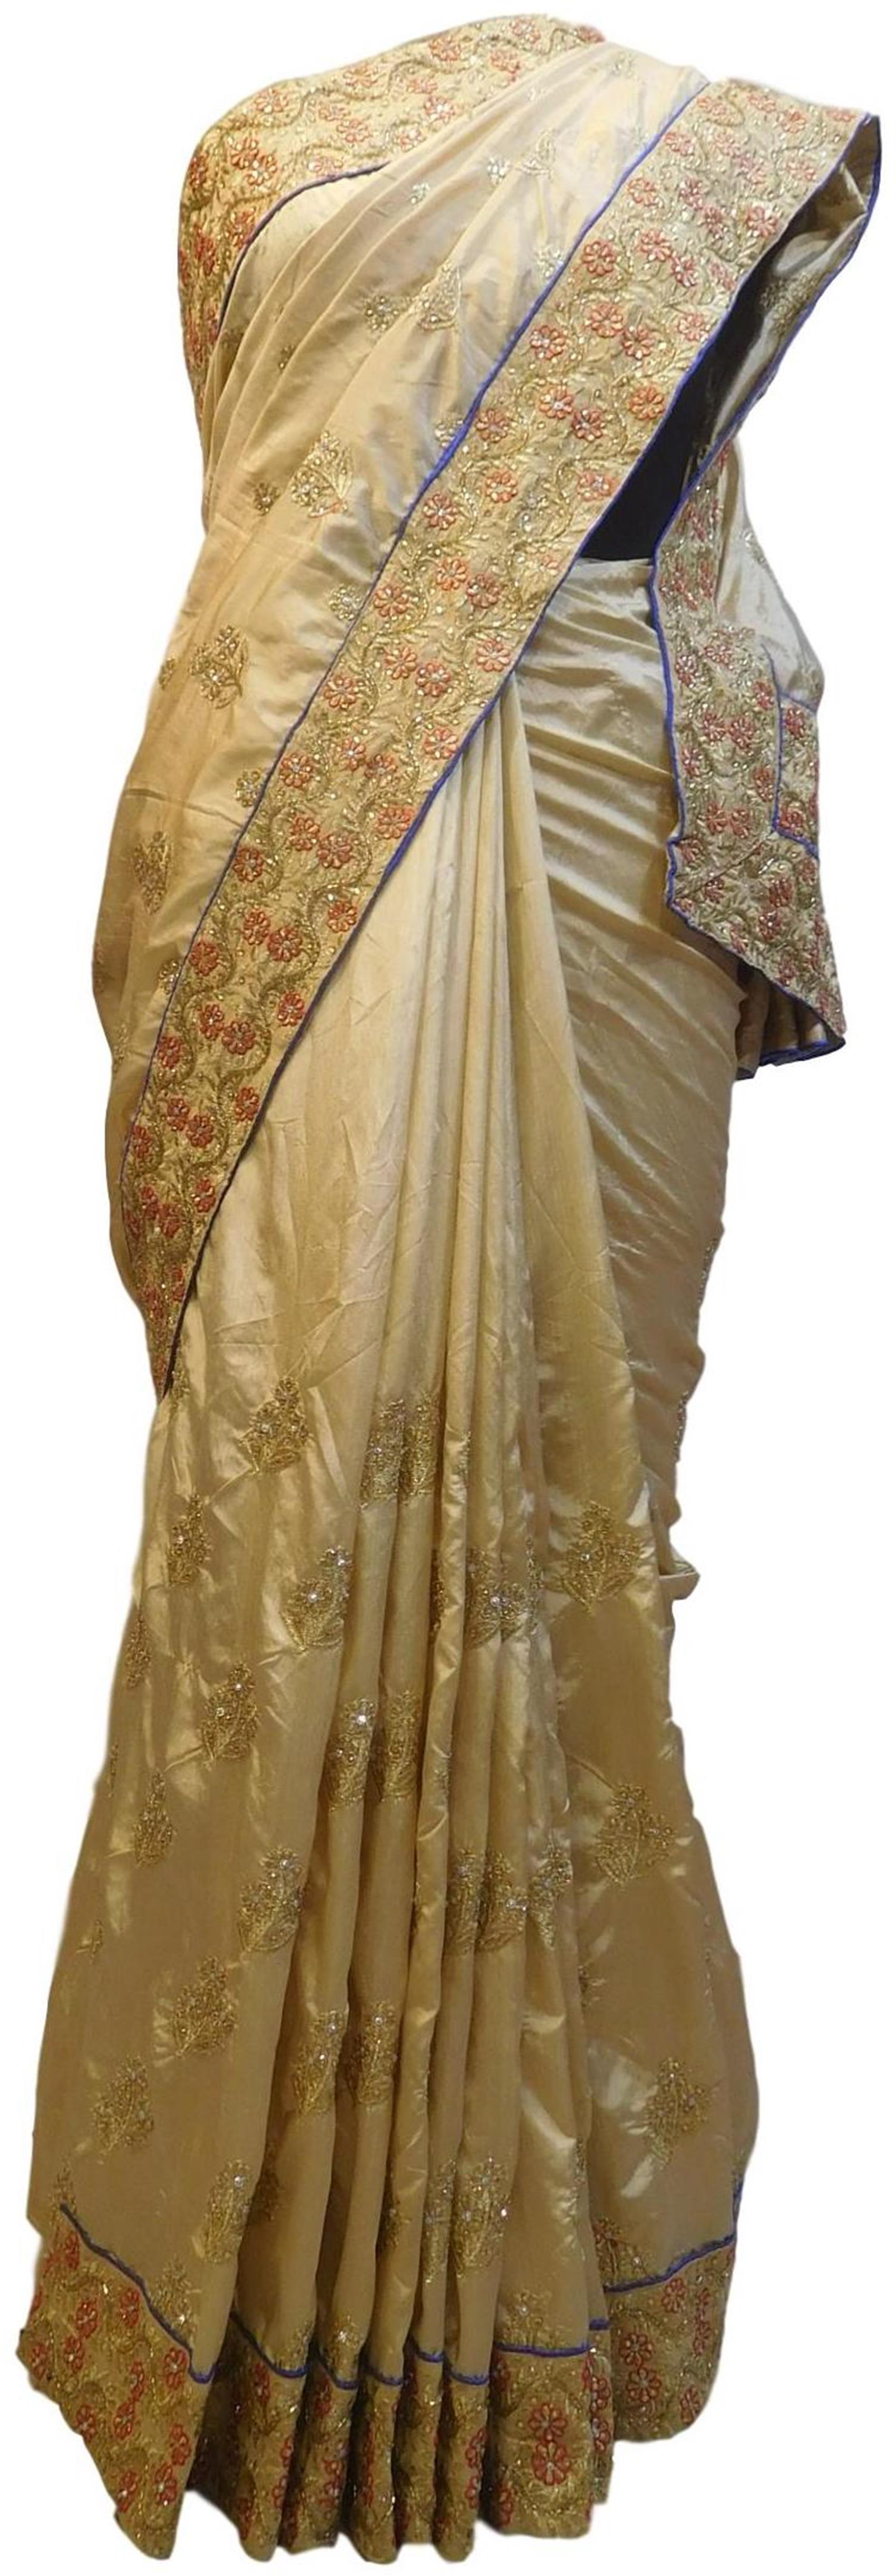 Cream Designer Wedding Partywear Silk Hand Embroidery Zari Cutdana Stone Thread Work Kolkata Saree Sari E350